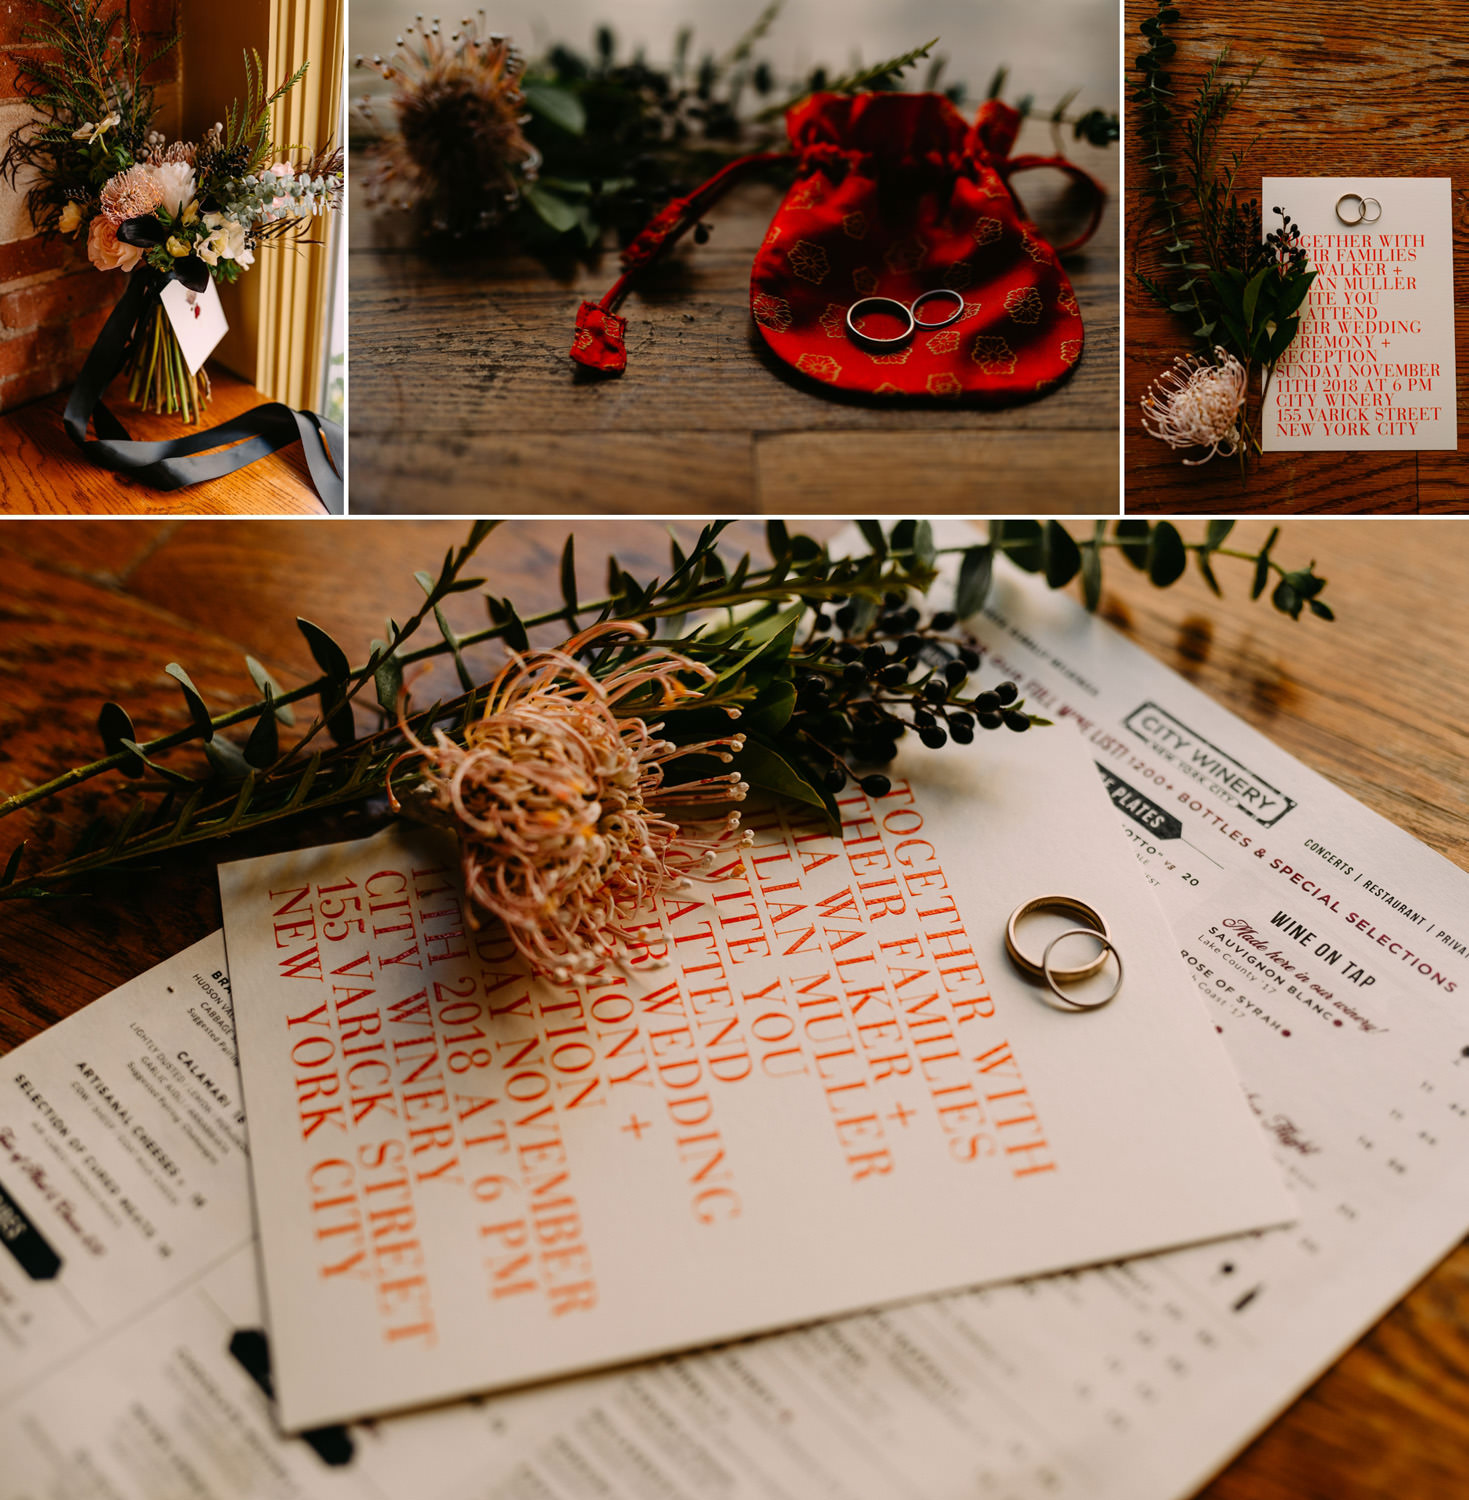 new york wedding photographer- flowers and decorations in city winery in Manhattan- Luke Sezeck